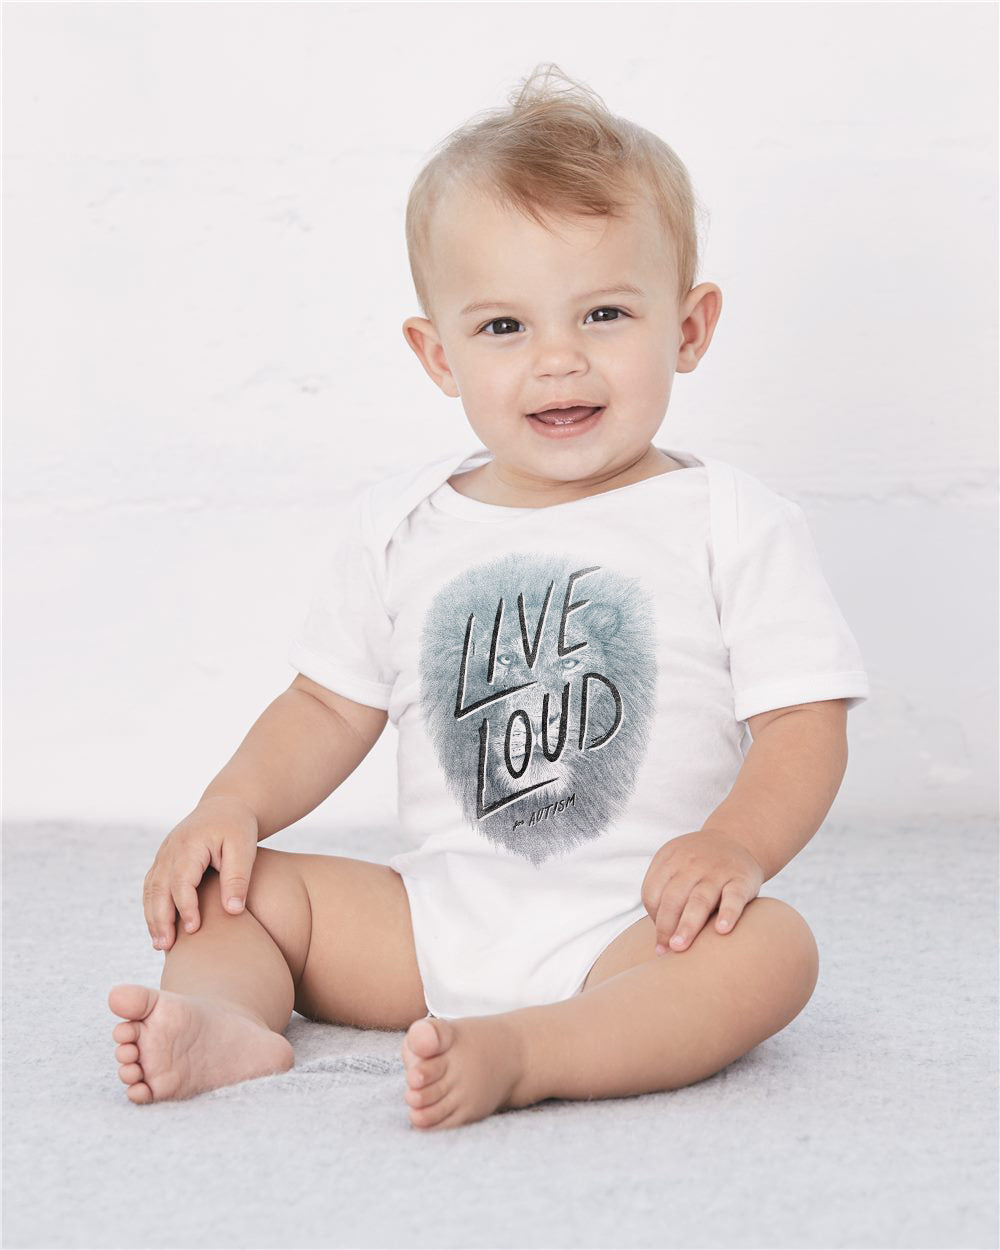 Live Loud Autism Lion Baby Cozy Graphic Tee Onesie in White